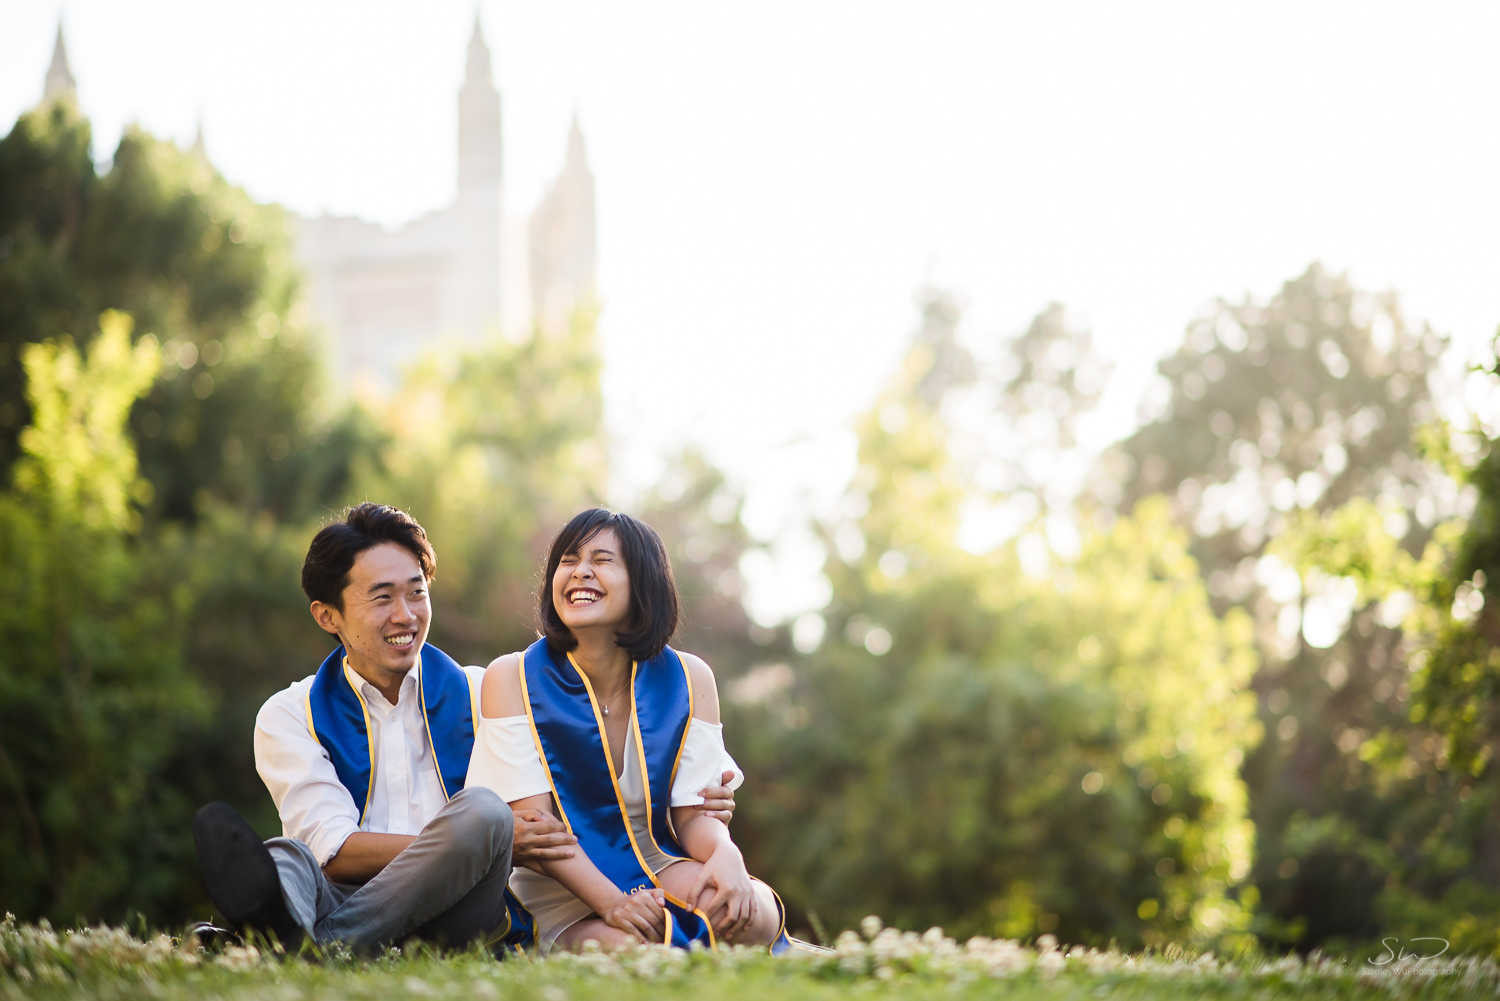 Copy of Copy of college senior couple posing together and laughing wearing 2017 sashes  | Stanley Wu Photography | Los Angeles | Graduation Portraits | UCLA, USC, LMU, Pepperdine, CSULA, CSUN, CSULB, UCI, UCSD